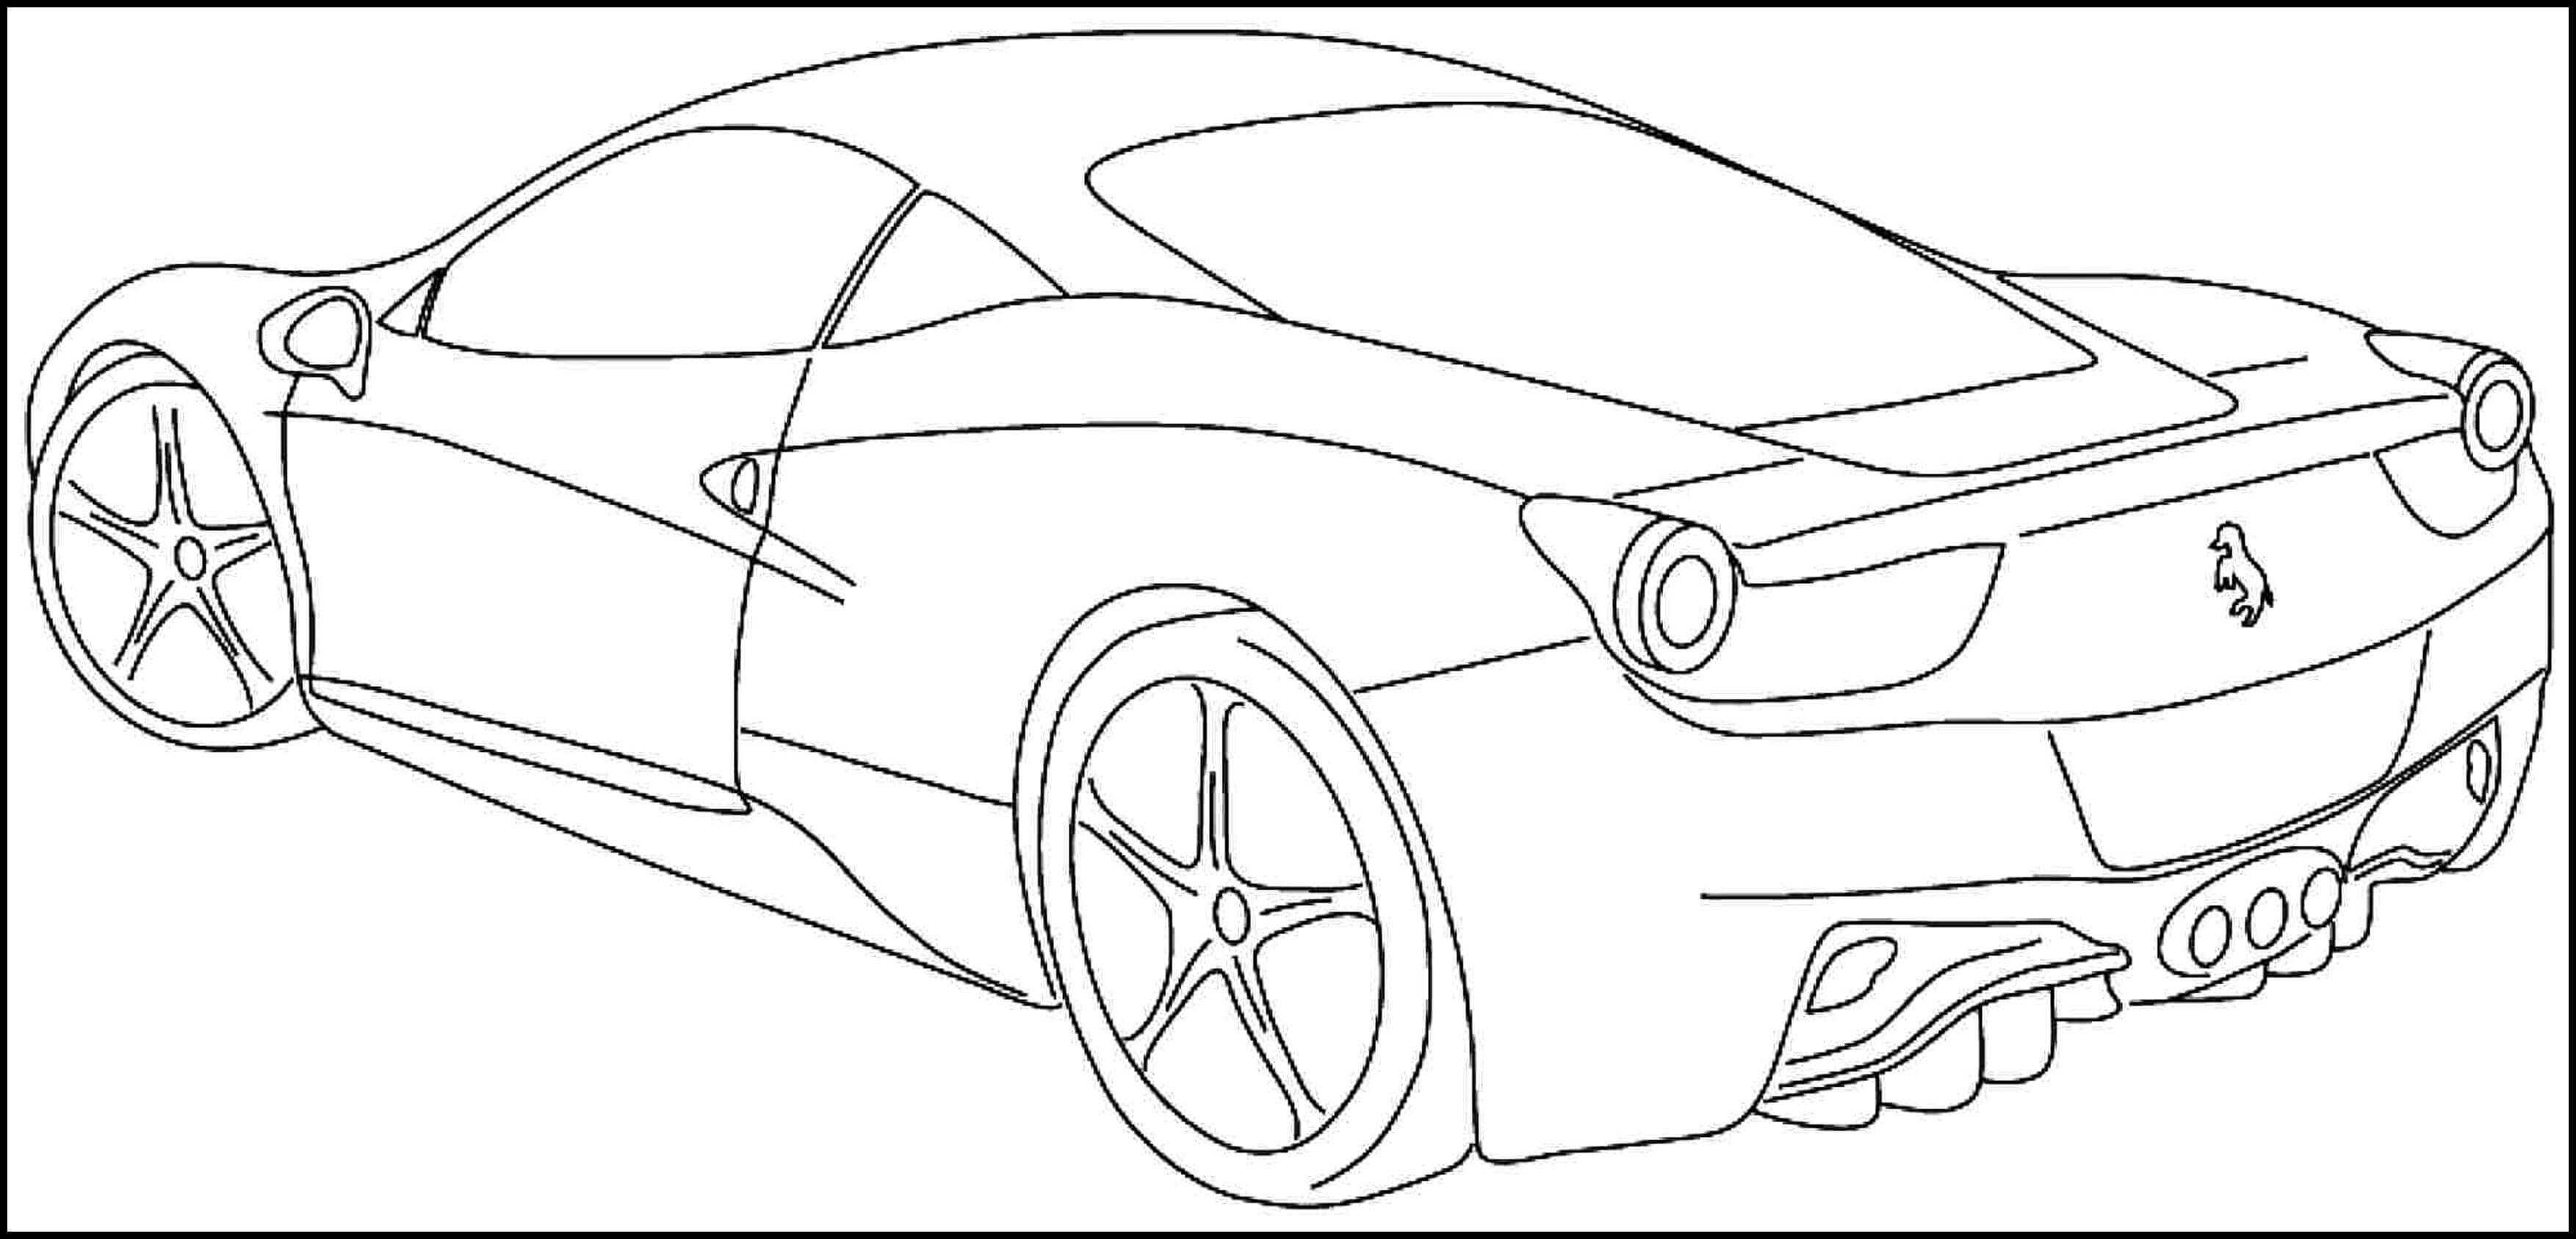 Printable Sports Car Coloring Pages For Kids Teens Download Or Print This Cool Clip Art As Pdf Sheets Free Make The Game Pictures Your